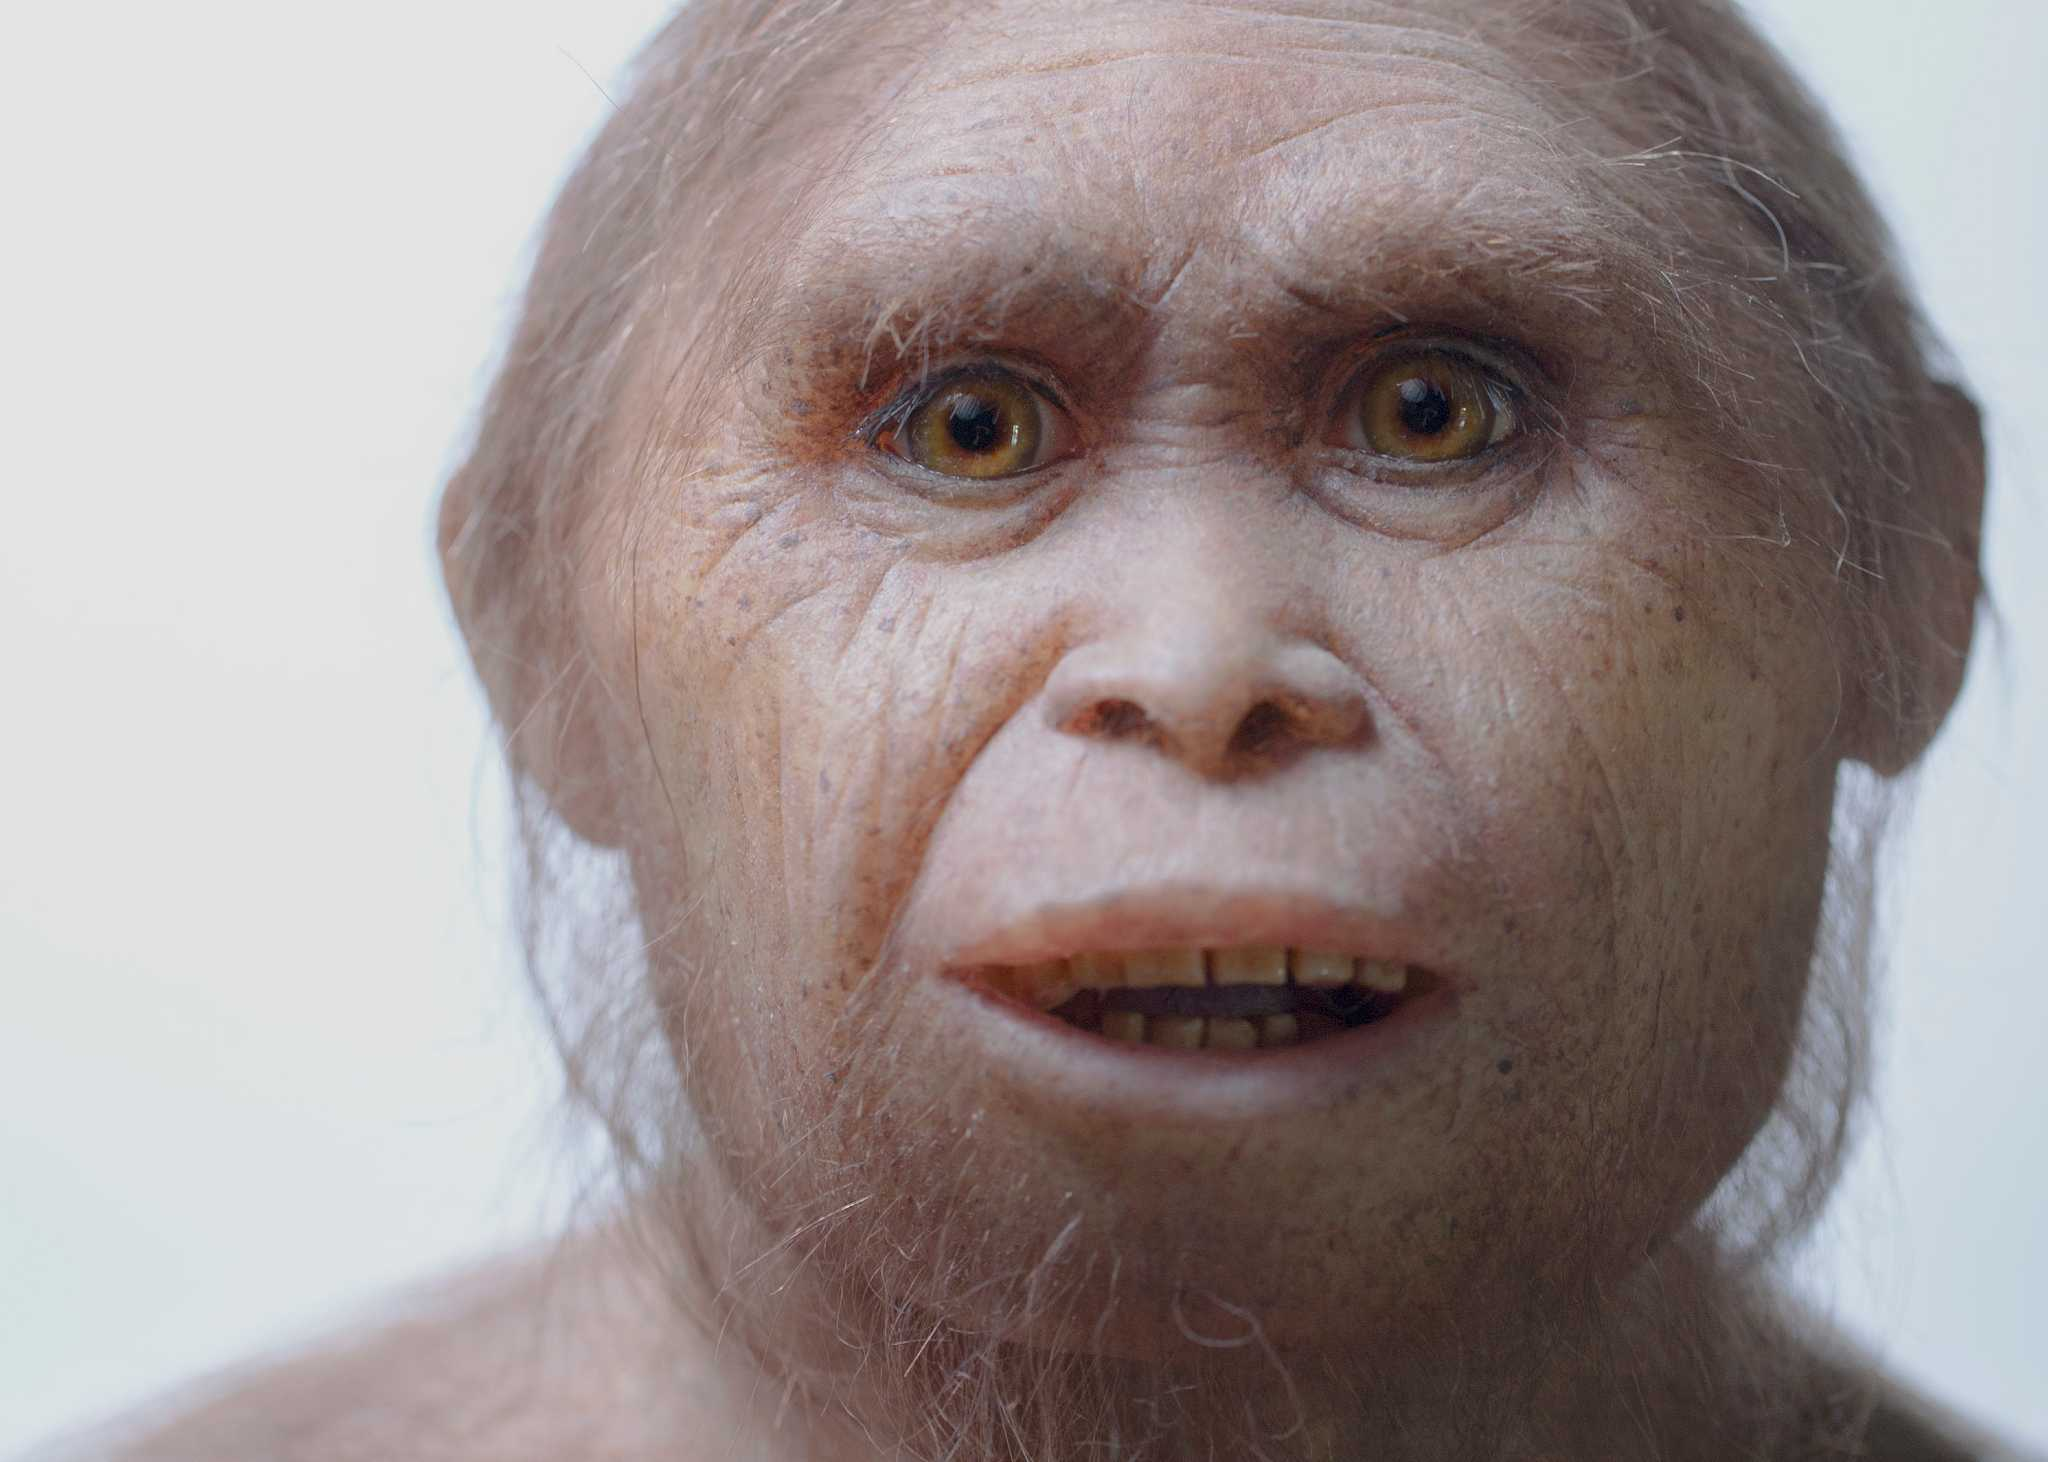 homo floresiensis the hobbit Homo floresiensis, nicknamed 'hobbit' because it only stood about 1 meter tall, is an extinct species of fossil human that lived on the island of flores, indonesia during the pleistocene.